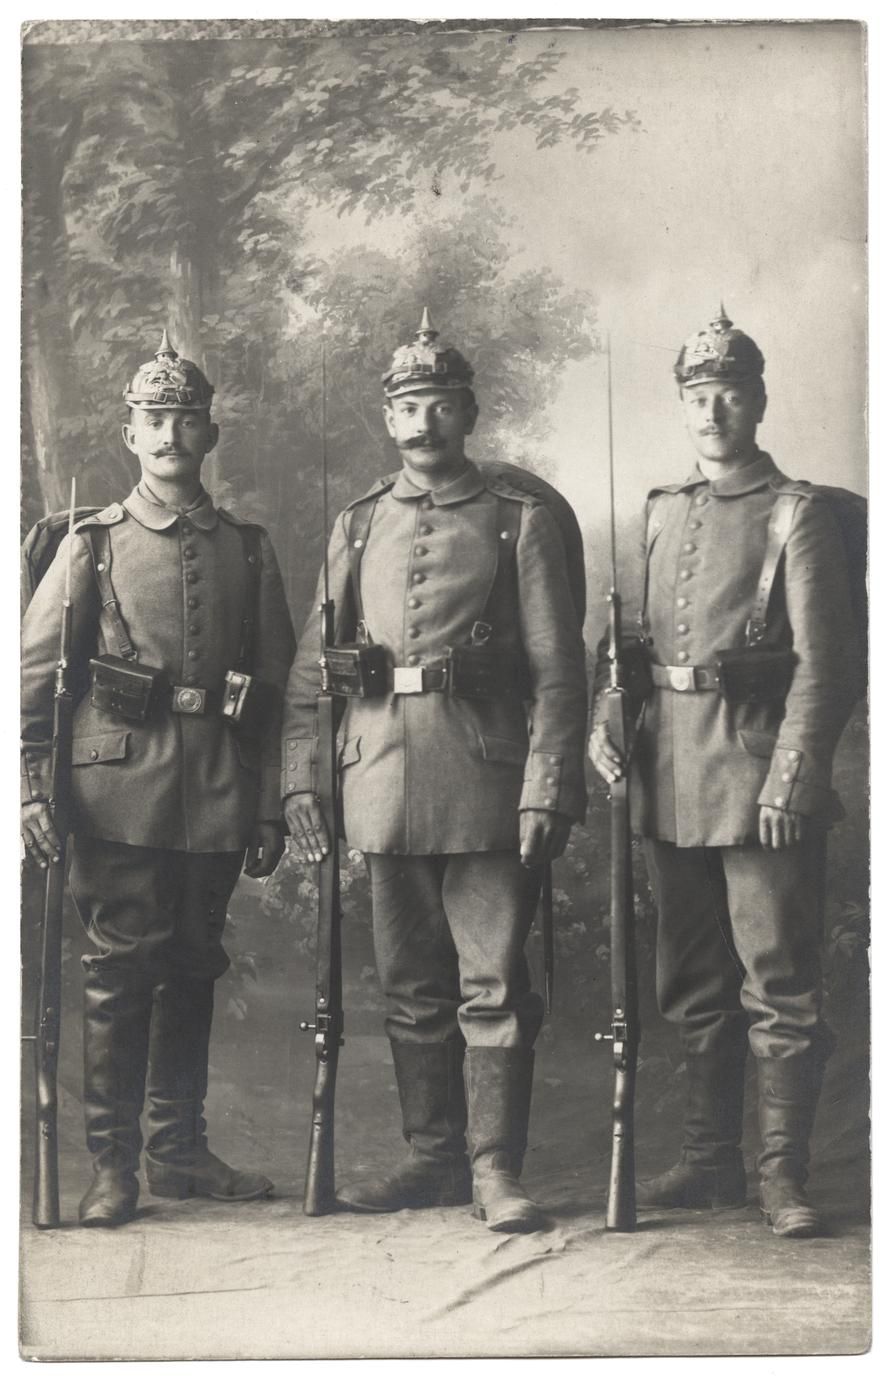 [Group portrait of three soldiers holding rifles with bayonets affixed]